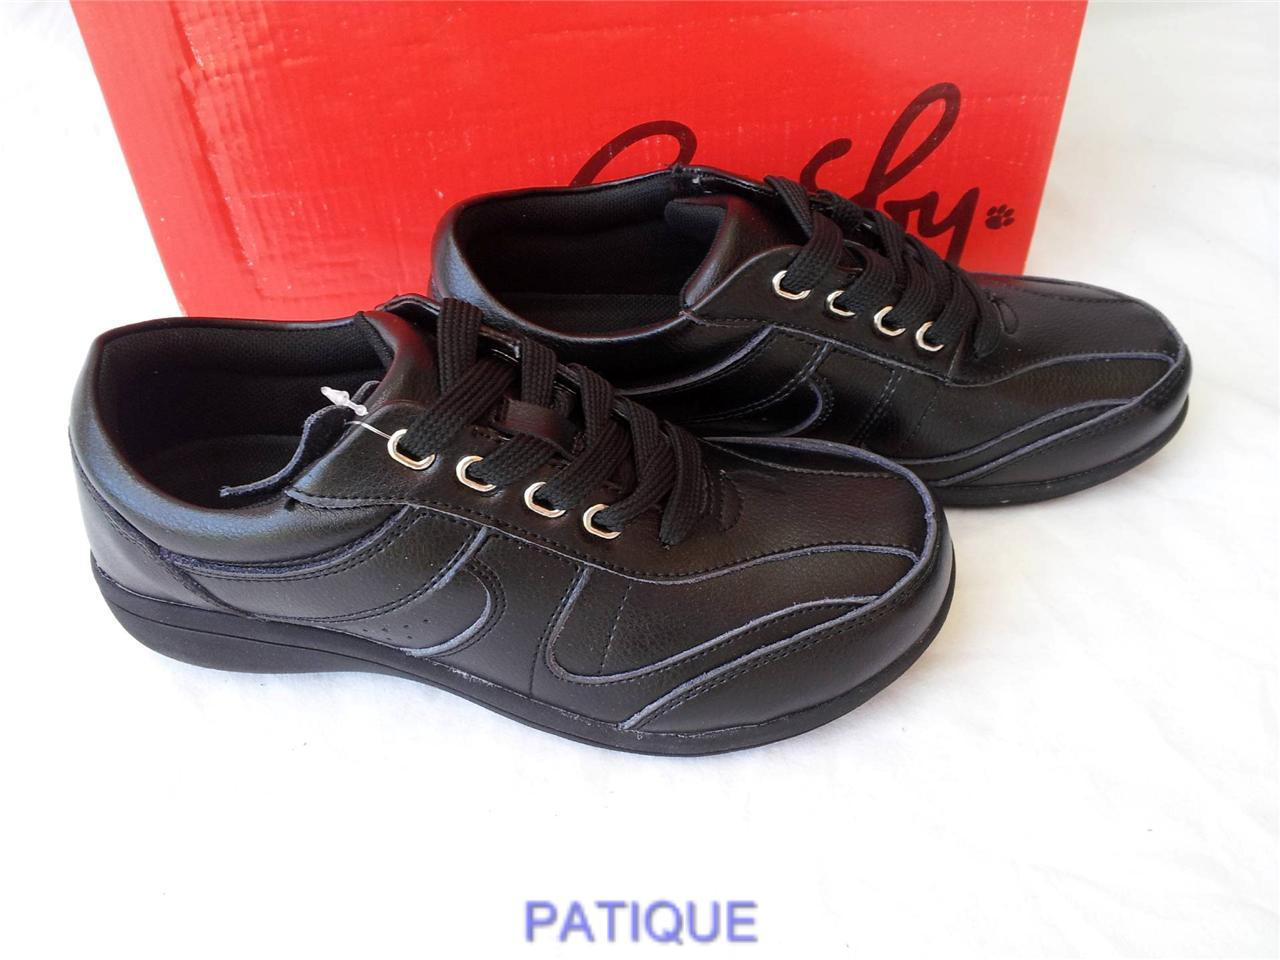 Image for Women's Leather Walking shoes with Premium Leather Upper from SHOP.CA